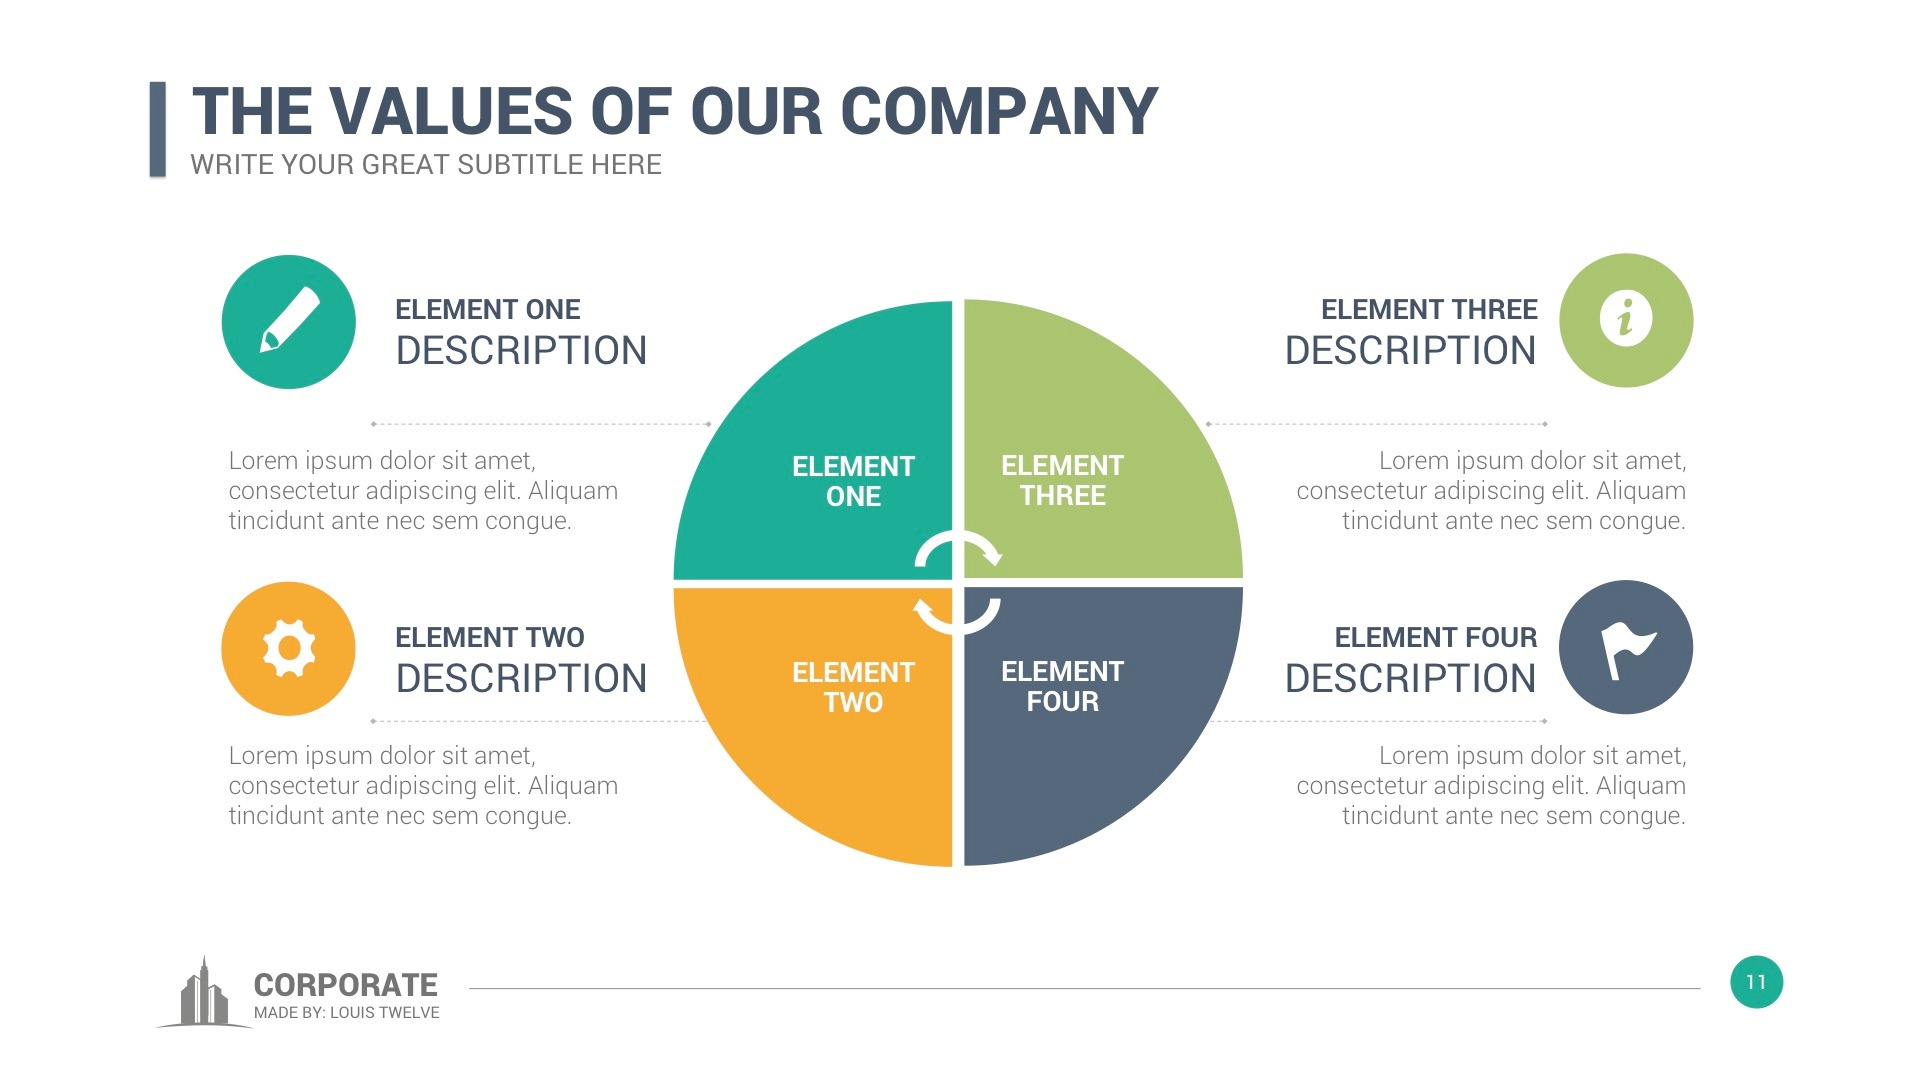 Corporate Overview Powerpoint Template by LouisTwelve-Design ...